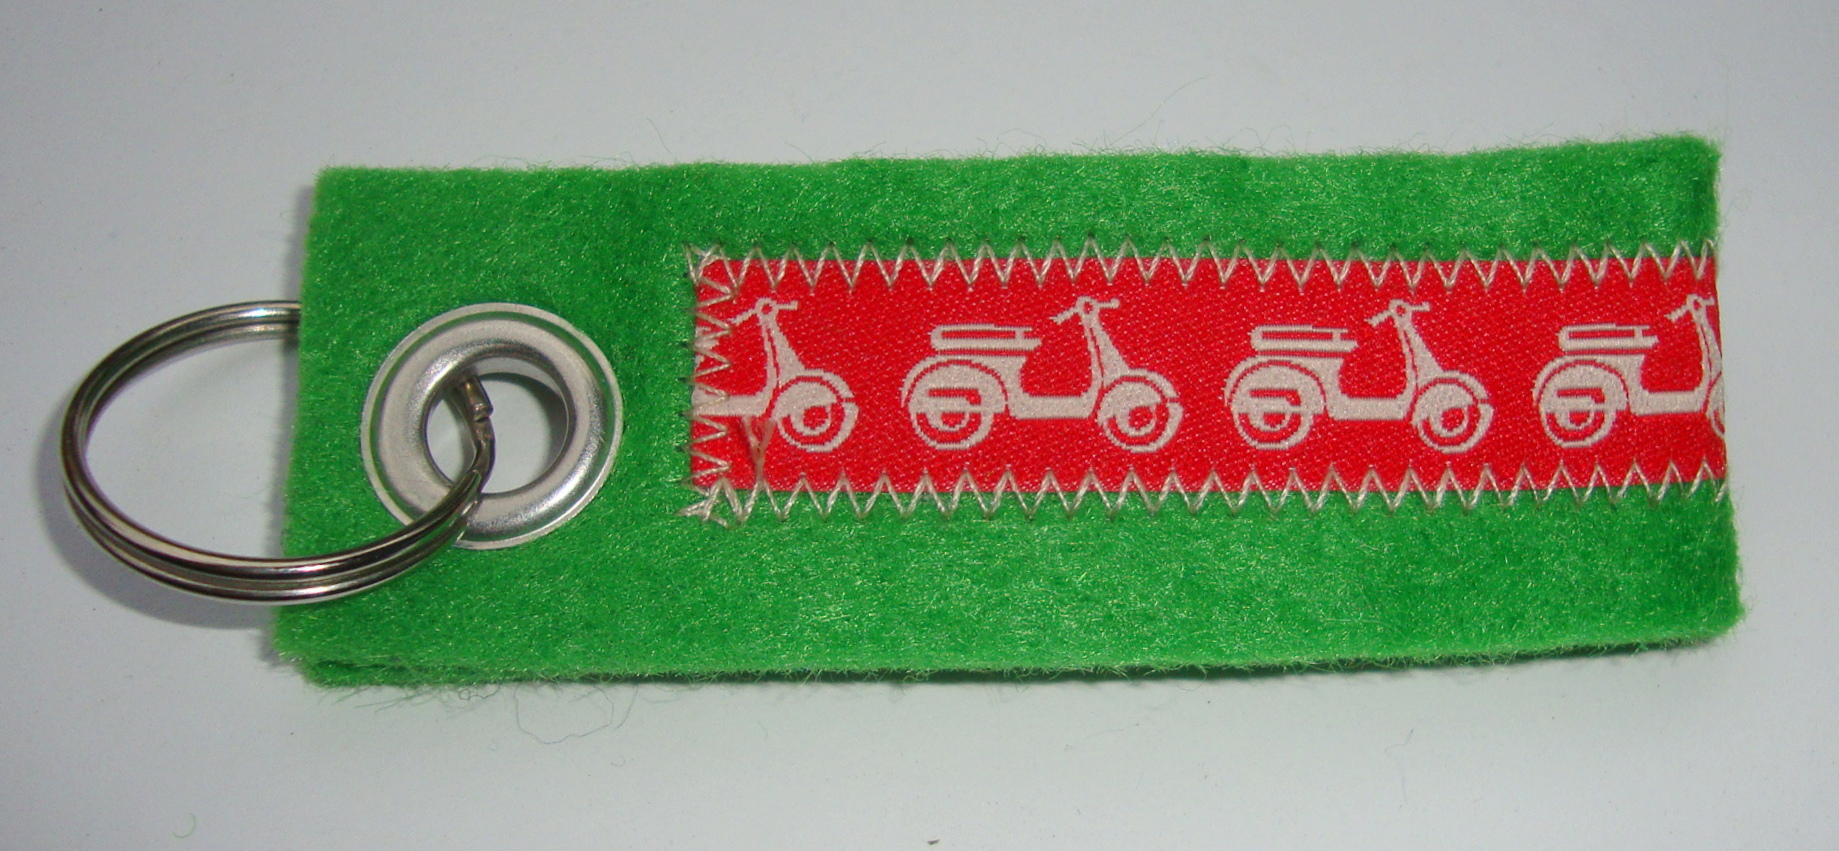 Key ring, felt, green, Vespa, red white